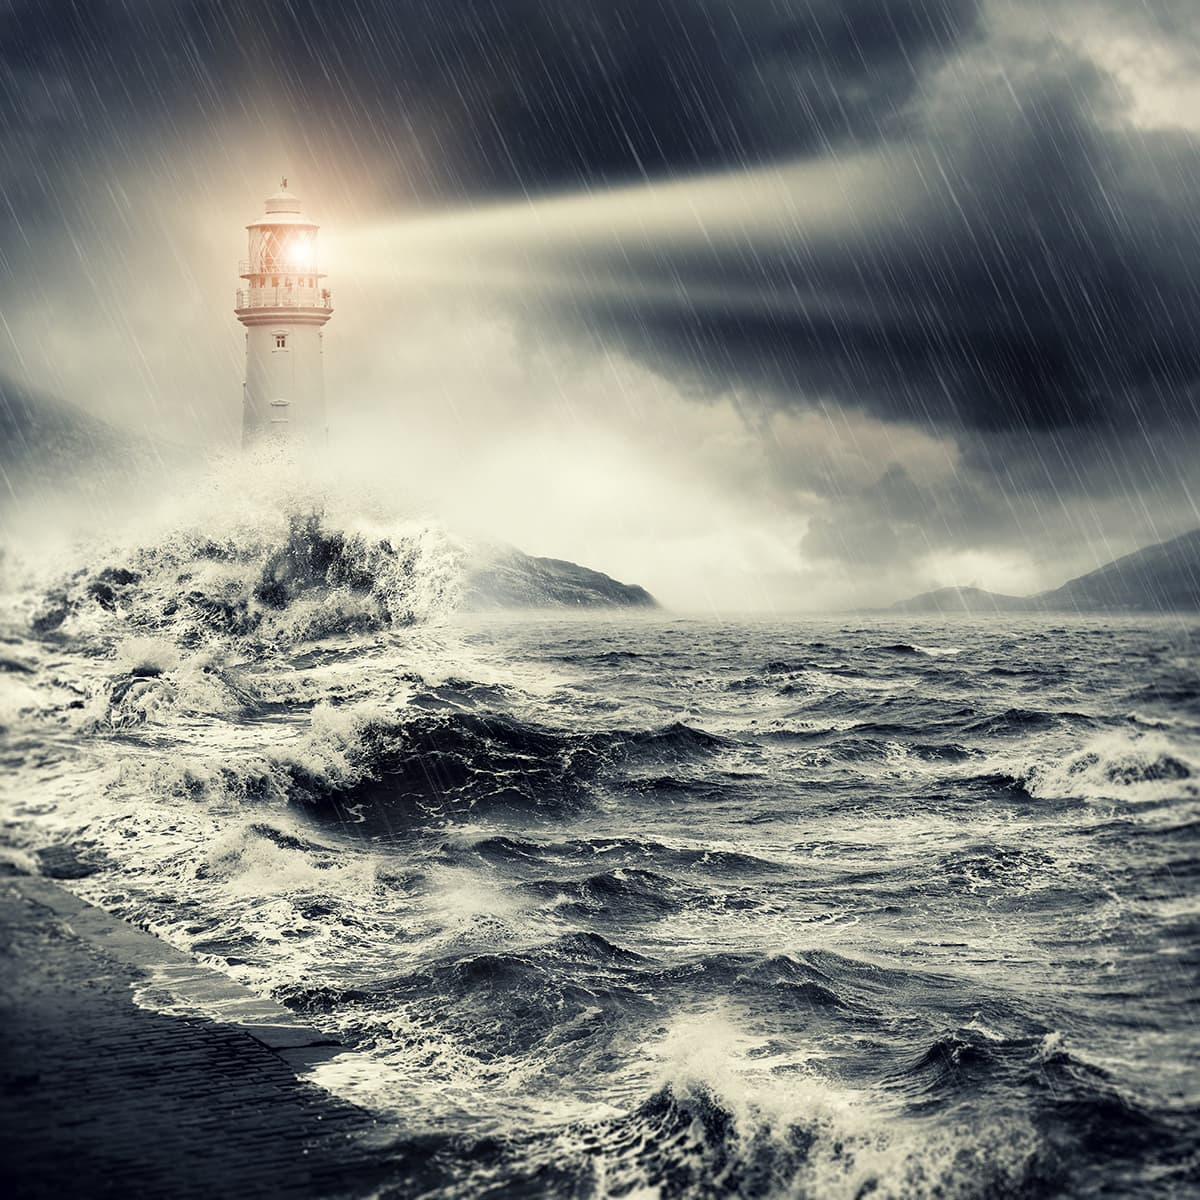 Lighthouse beacon shining over stormy seas